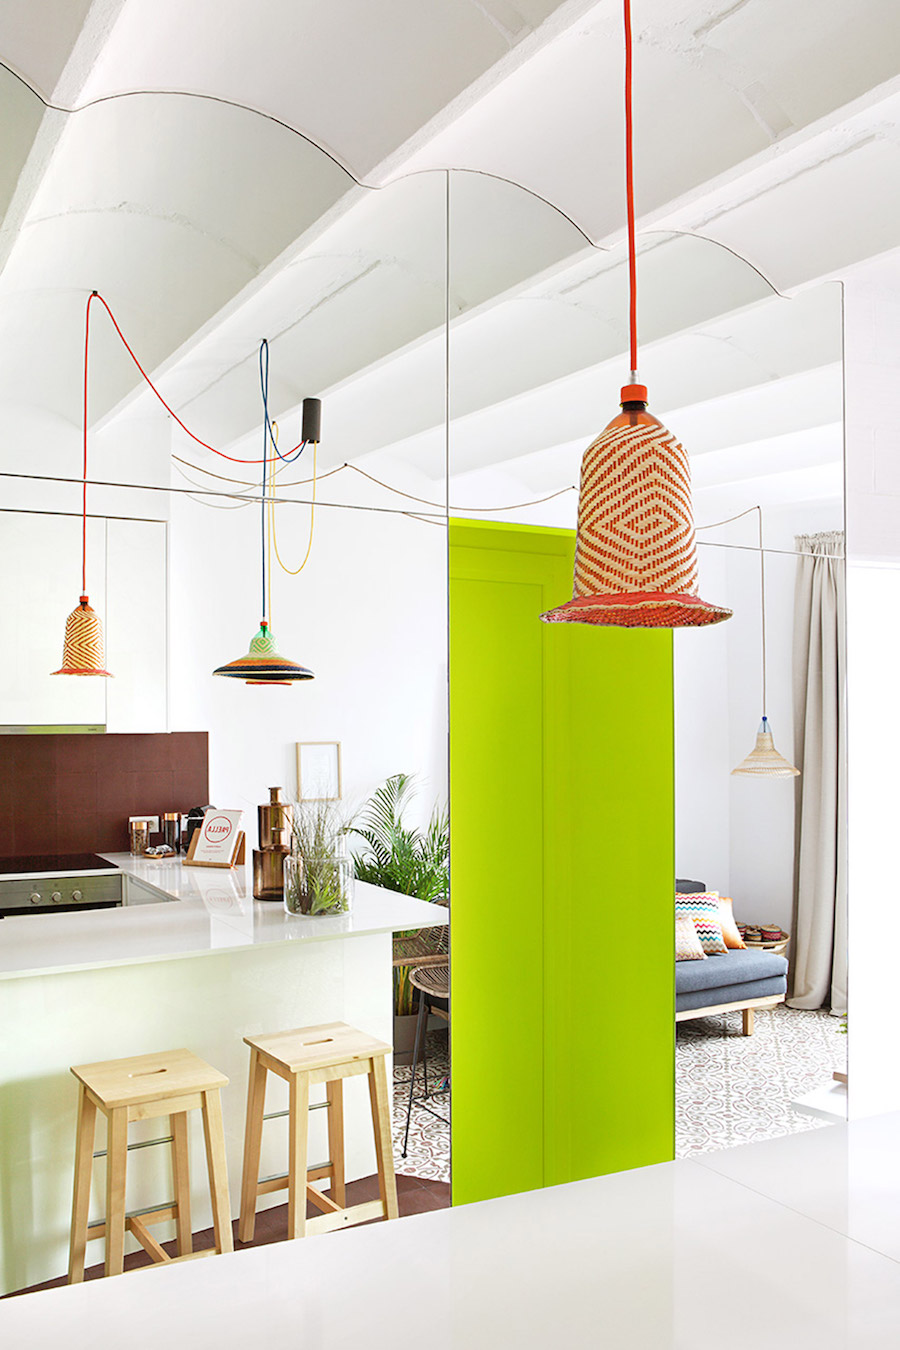 Barcelona kitchen with neon yellow accent wall